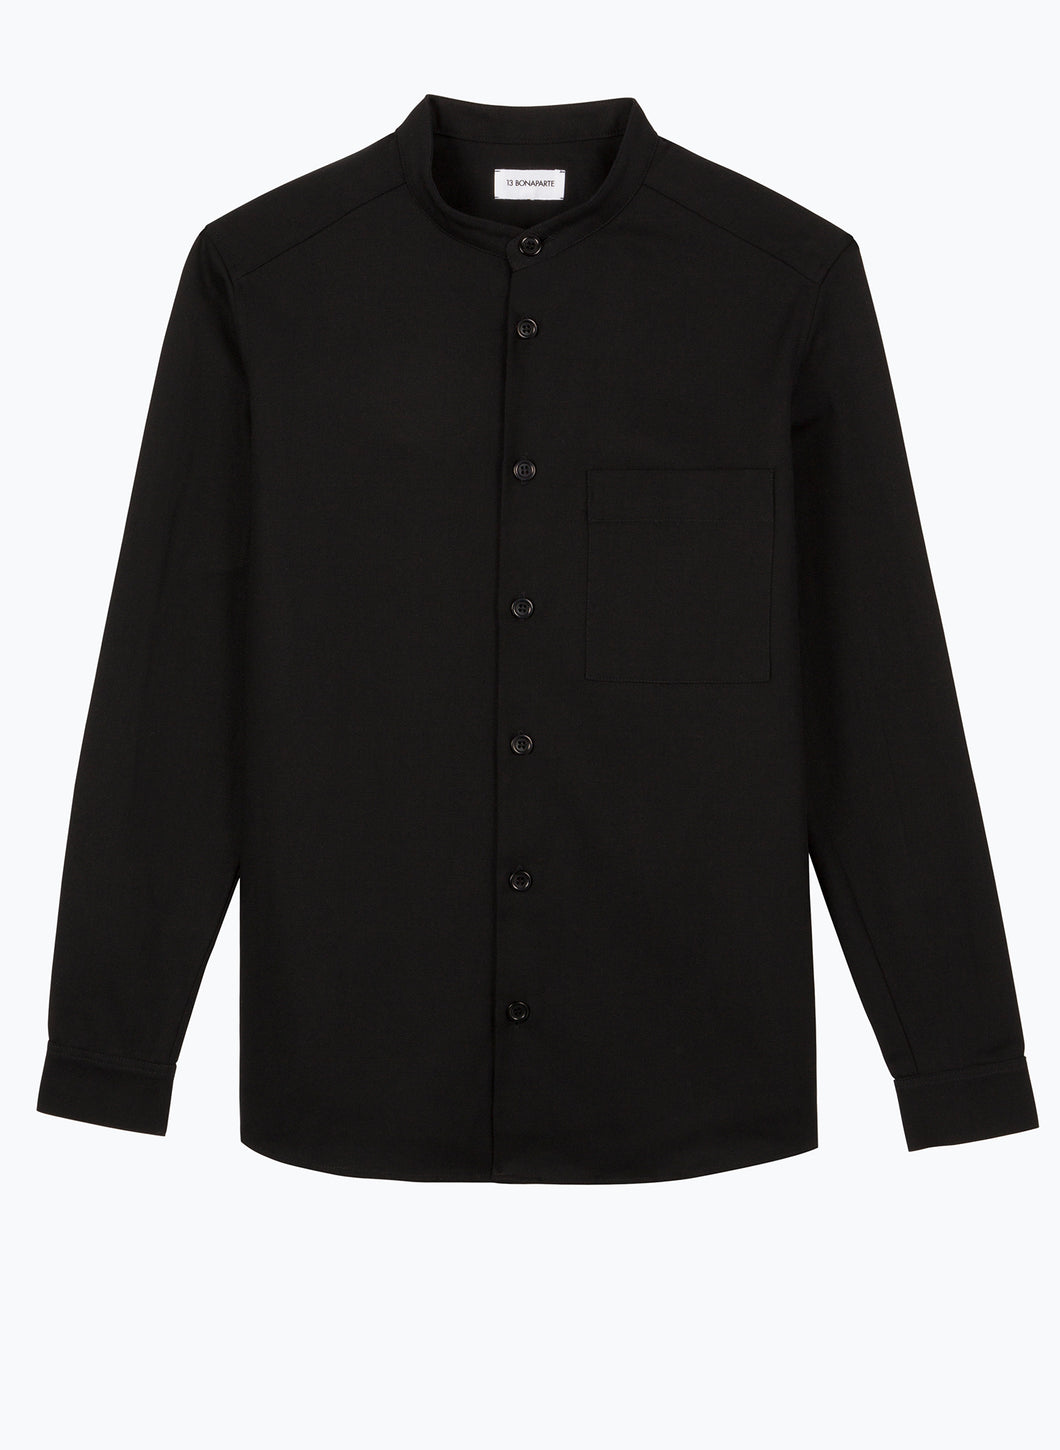 Mandarin Collar Overshirt in Black Canvas